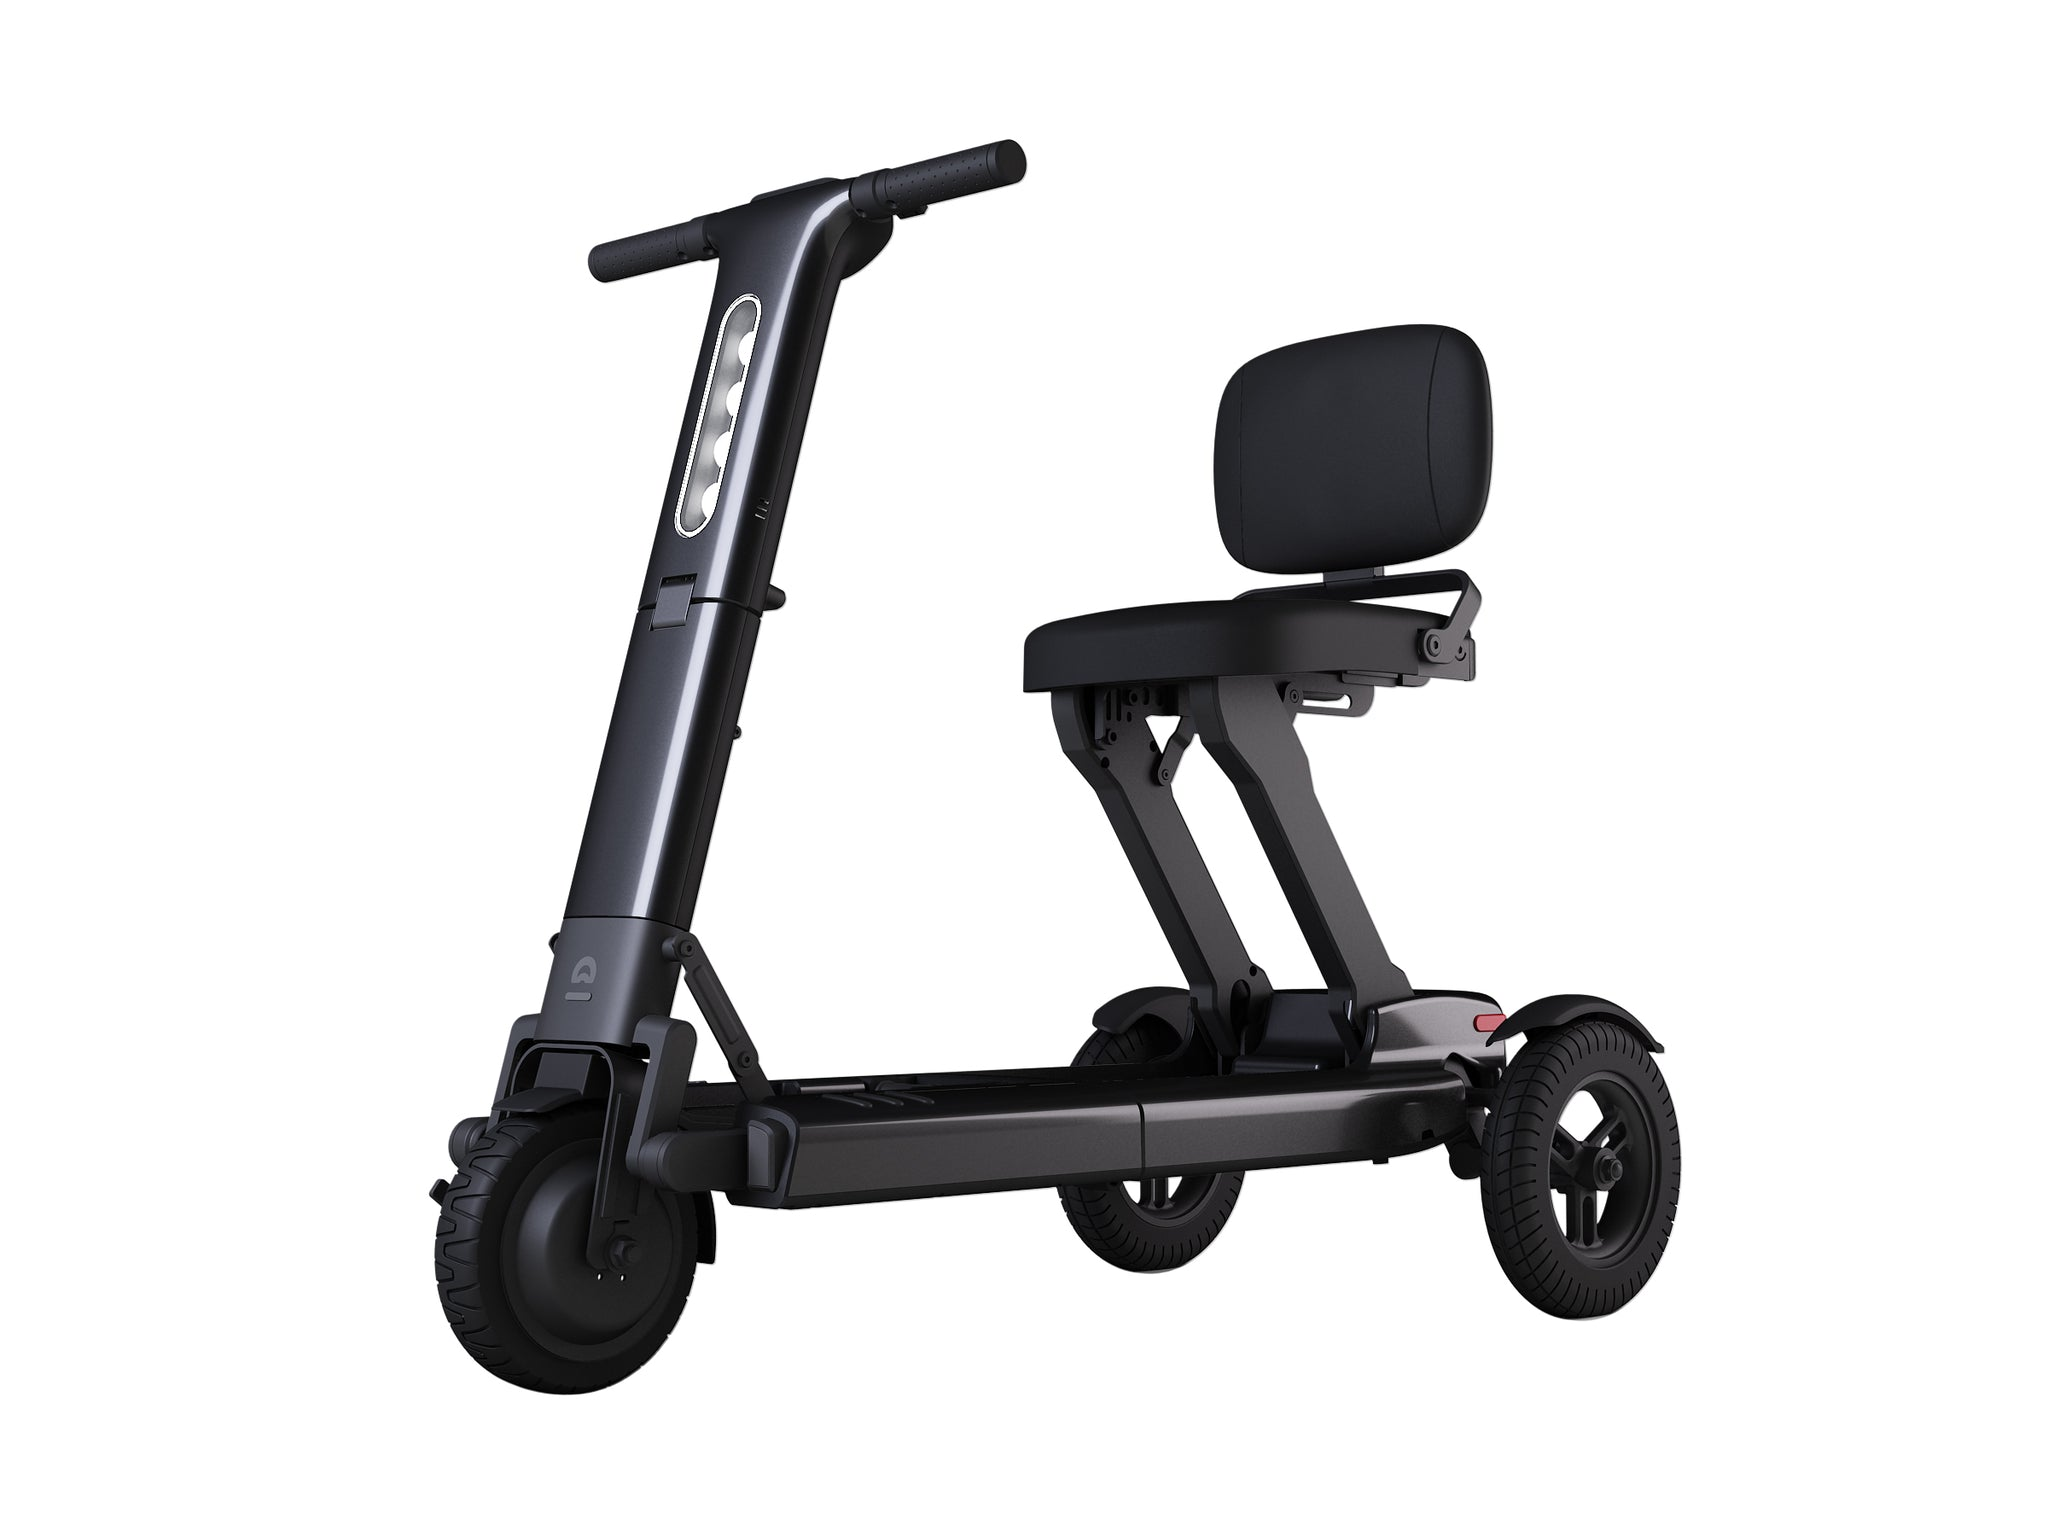 Relync R1 Foldable Compact Tri-wheel Electric mobility scooter